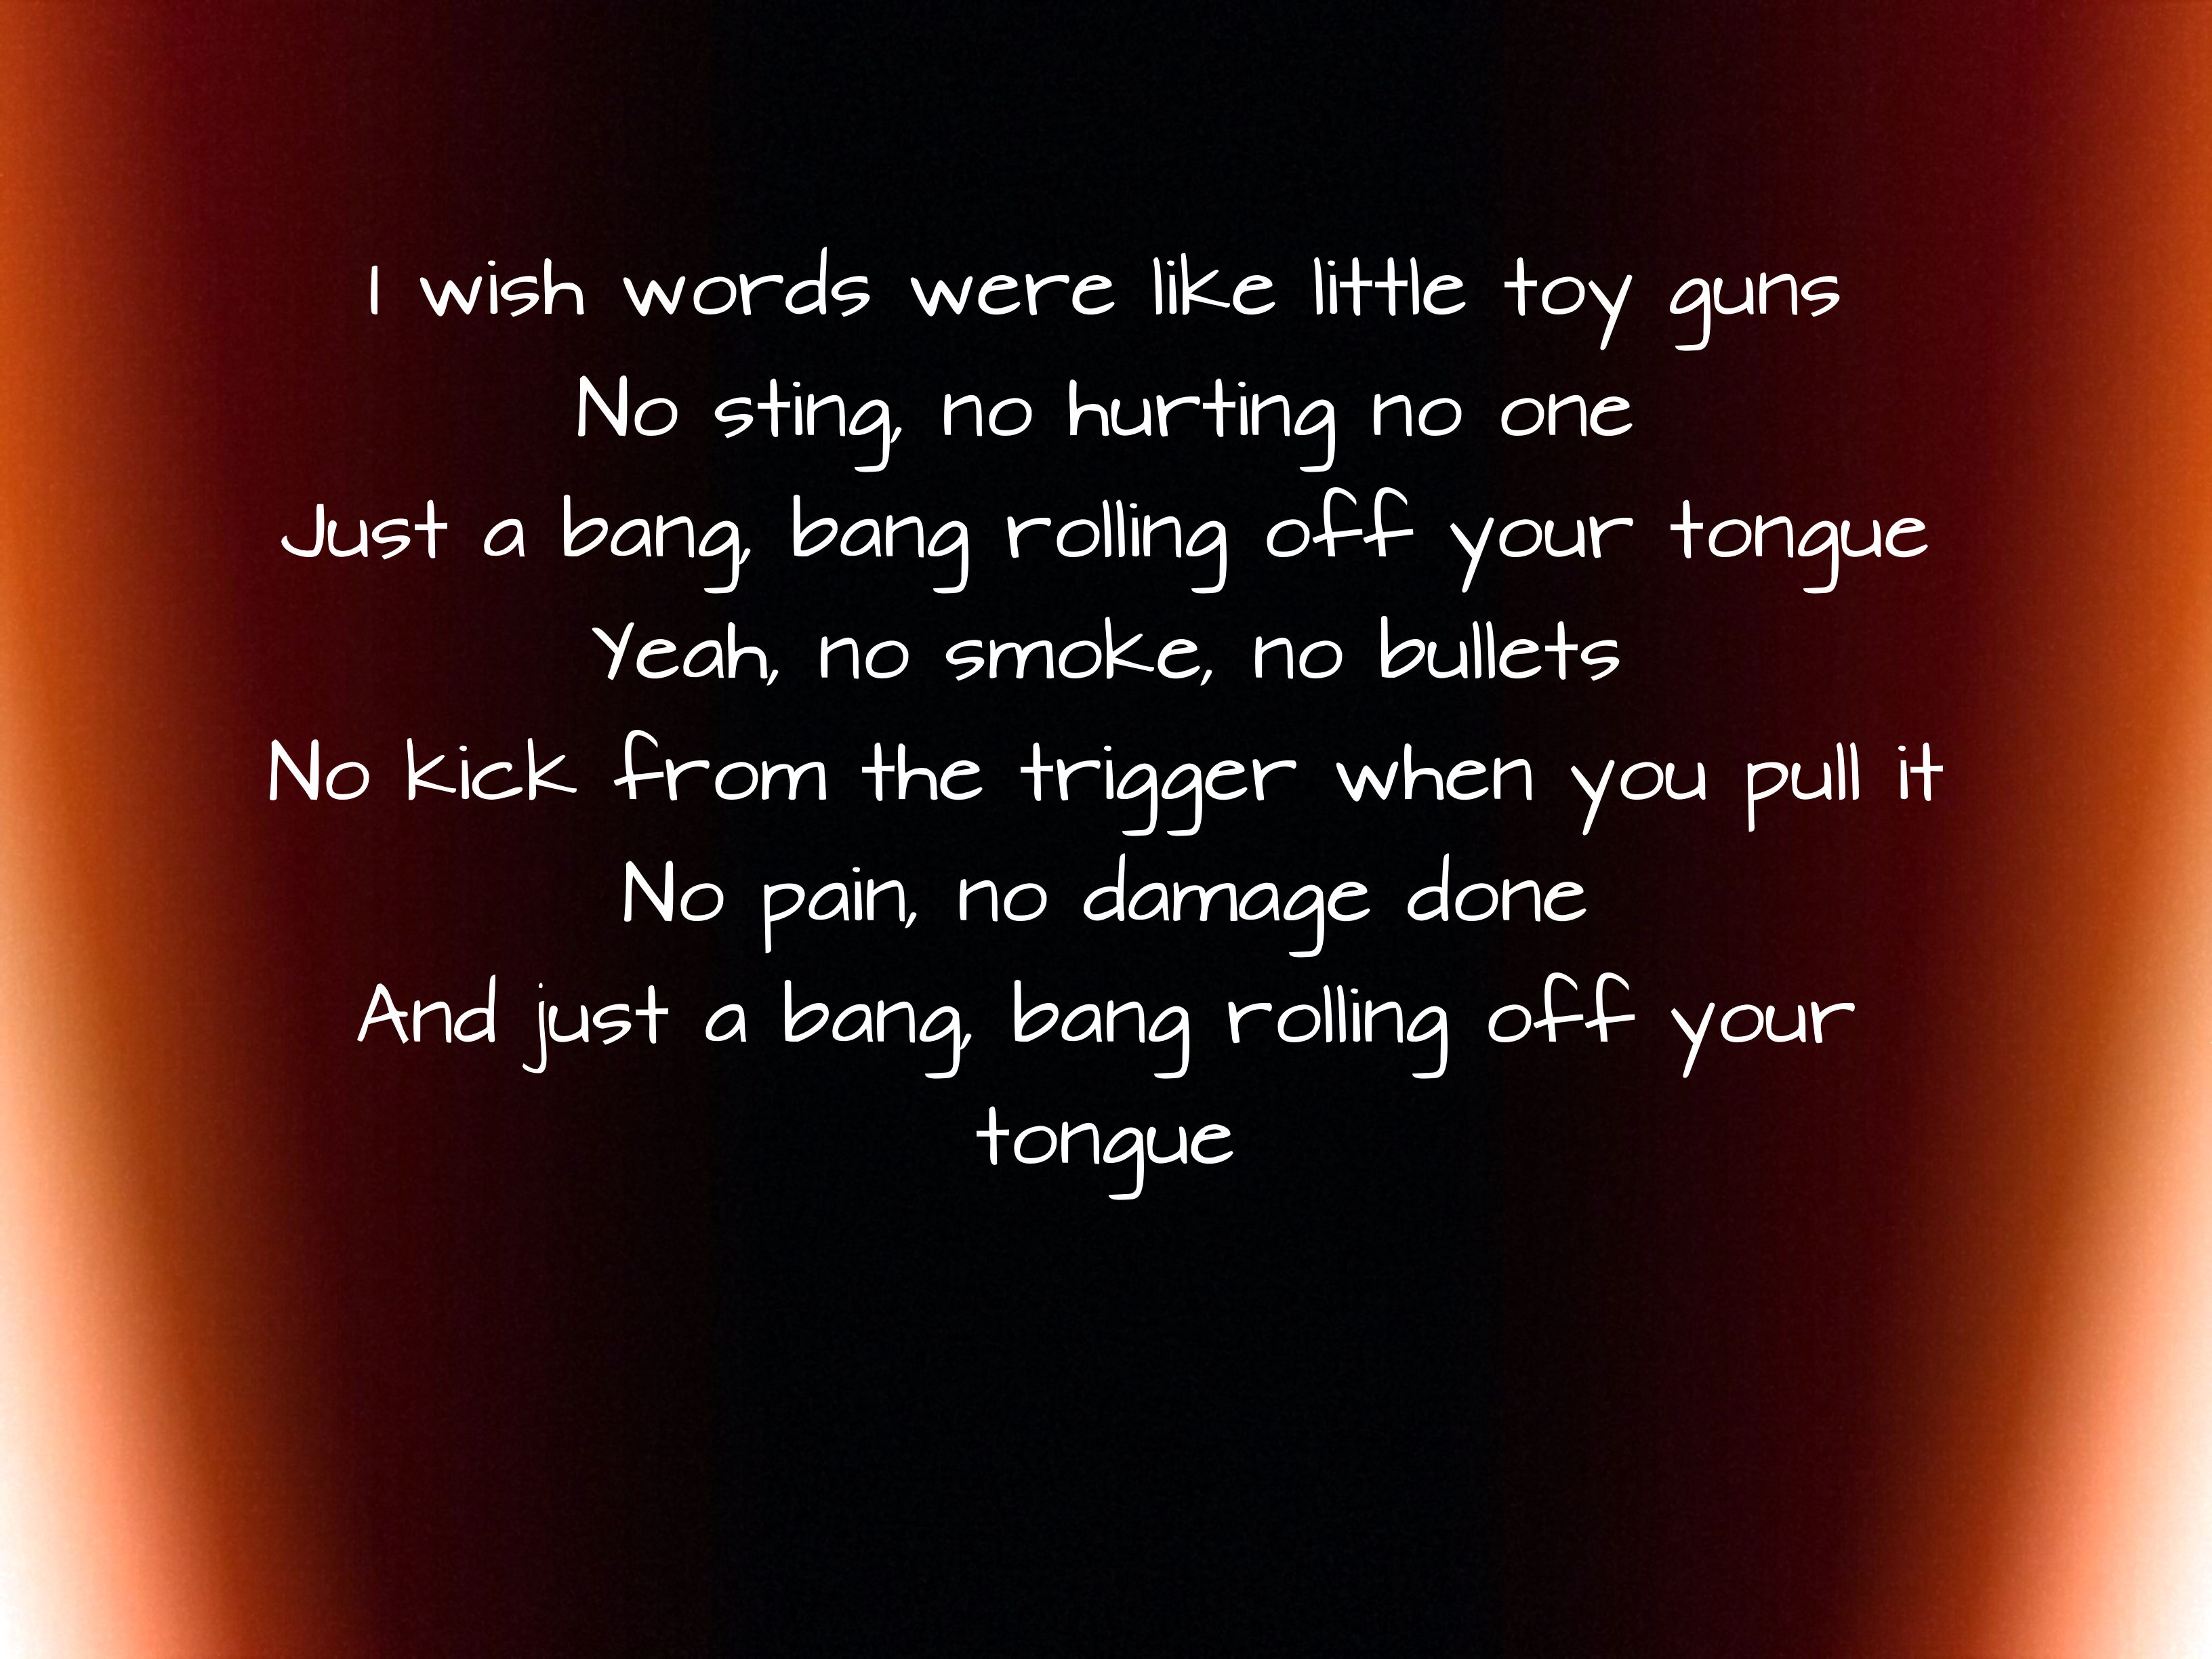 carrie underwood lyrics tumblr - photo #33